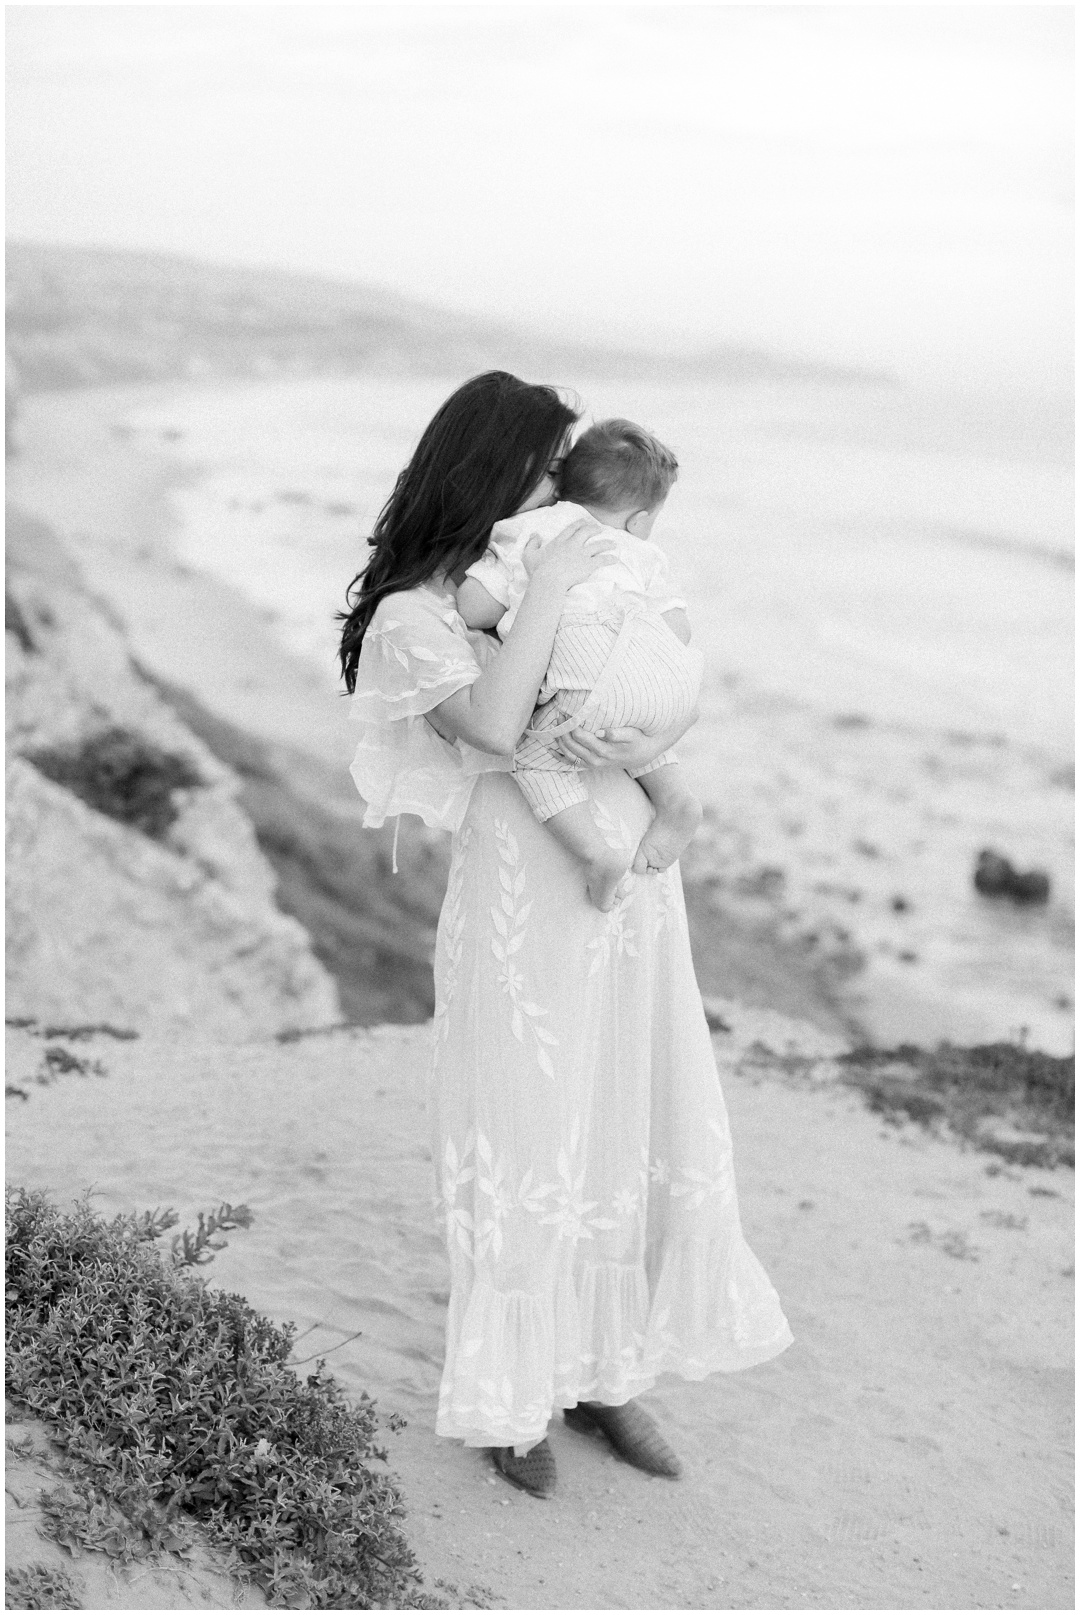 Newport_Beach_Newborn_Light_Airy_Natural_Photographer_Newport_Beach_Photographer_Orange_County_Family_Photographer_Cori_Kleckner_Photography_Huntington_Beach_Photographer_Family_OC_Newborn_Danielle_Lawley_Parker_Maternity_Family_Jordan_Lawley_3366.jpg